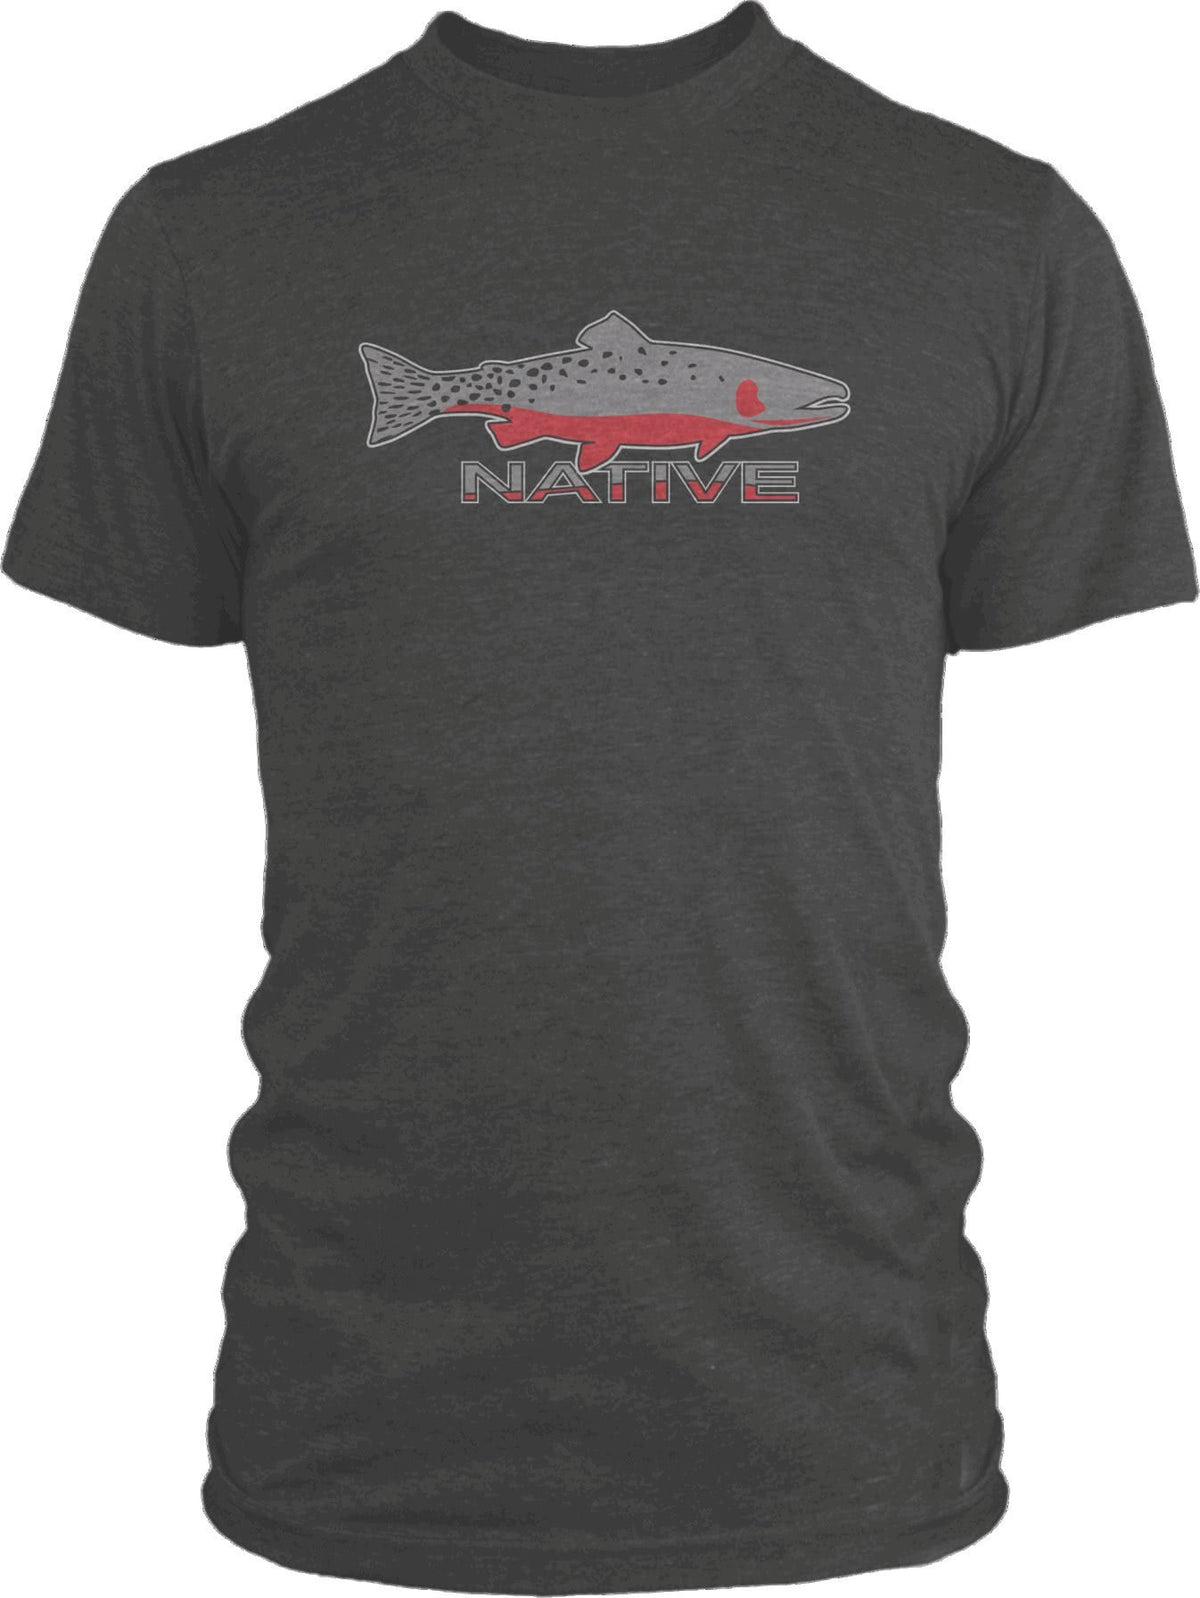 RepYourWater Native Cutthroat Short Sleeve T-Shirt